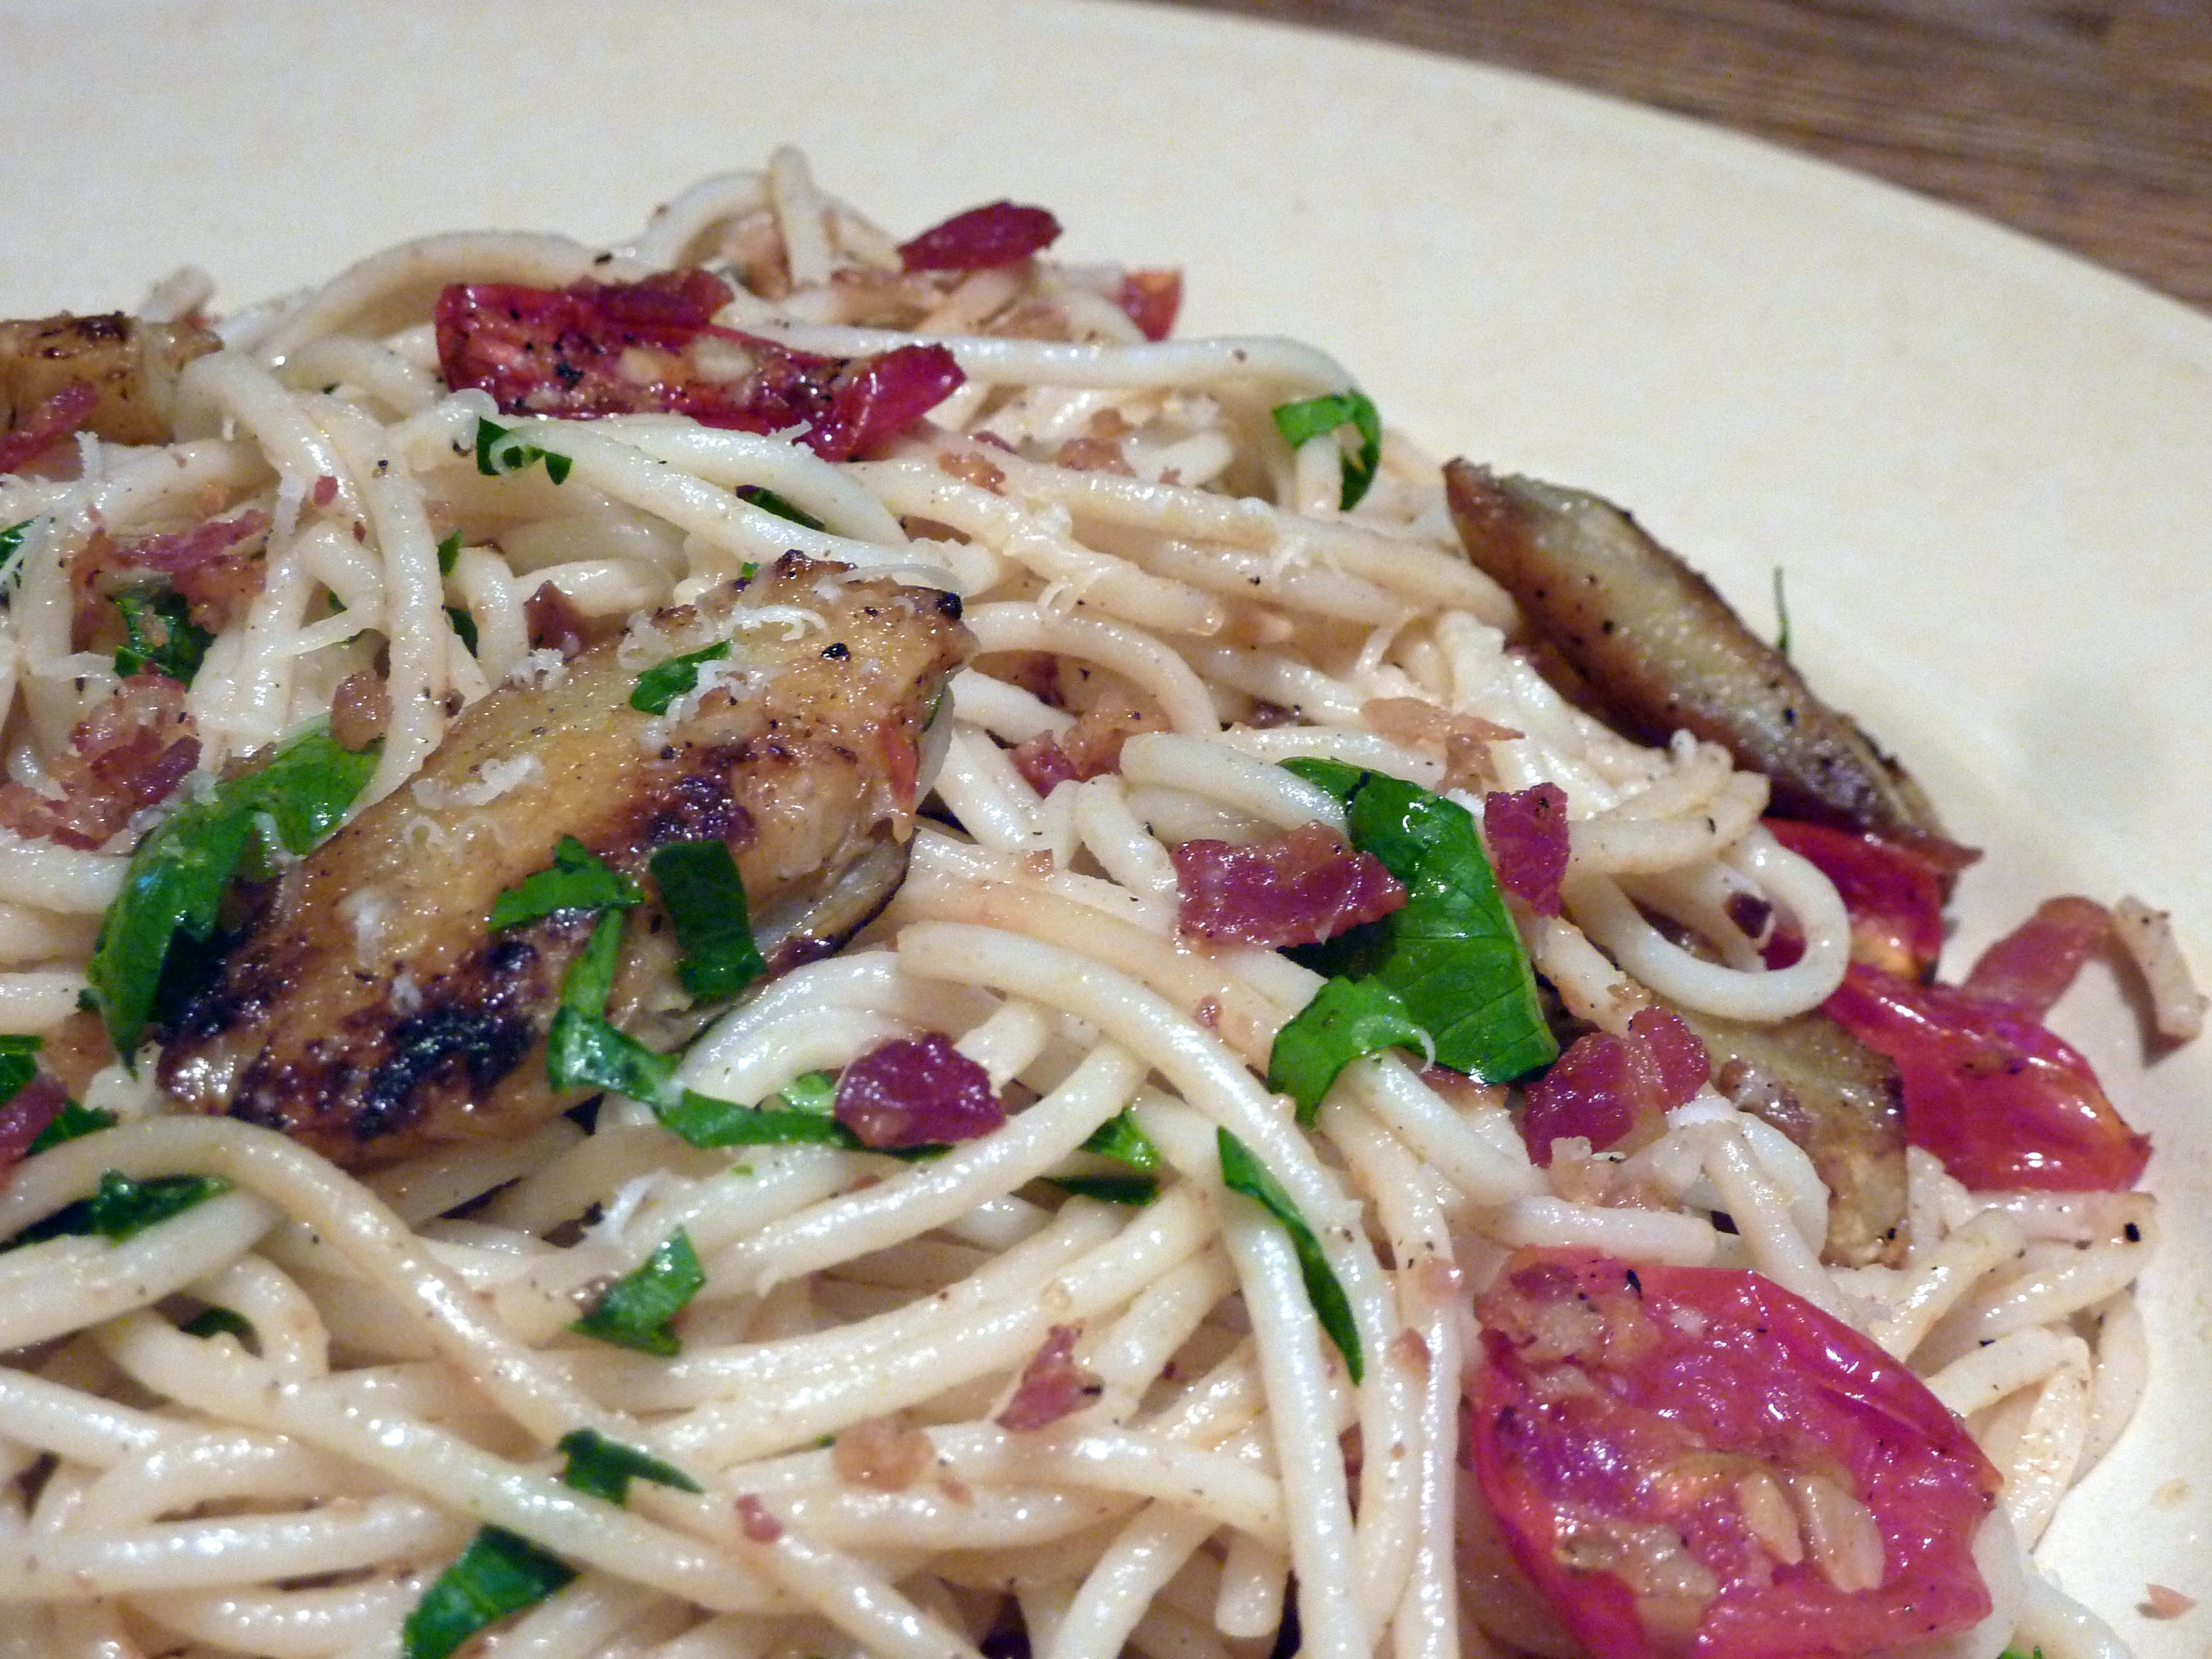 Pasta with Fried Artichoke Chips, Pancetta, Roasted Tomatoes and Lemon Breadcrumbs